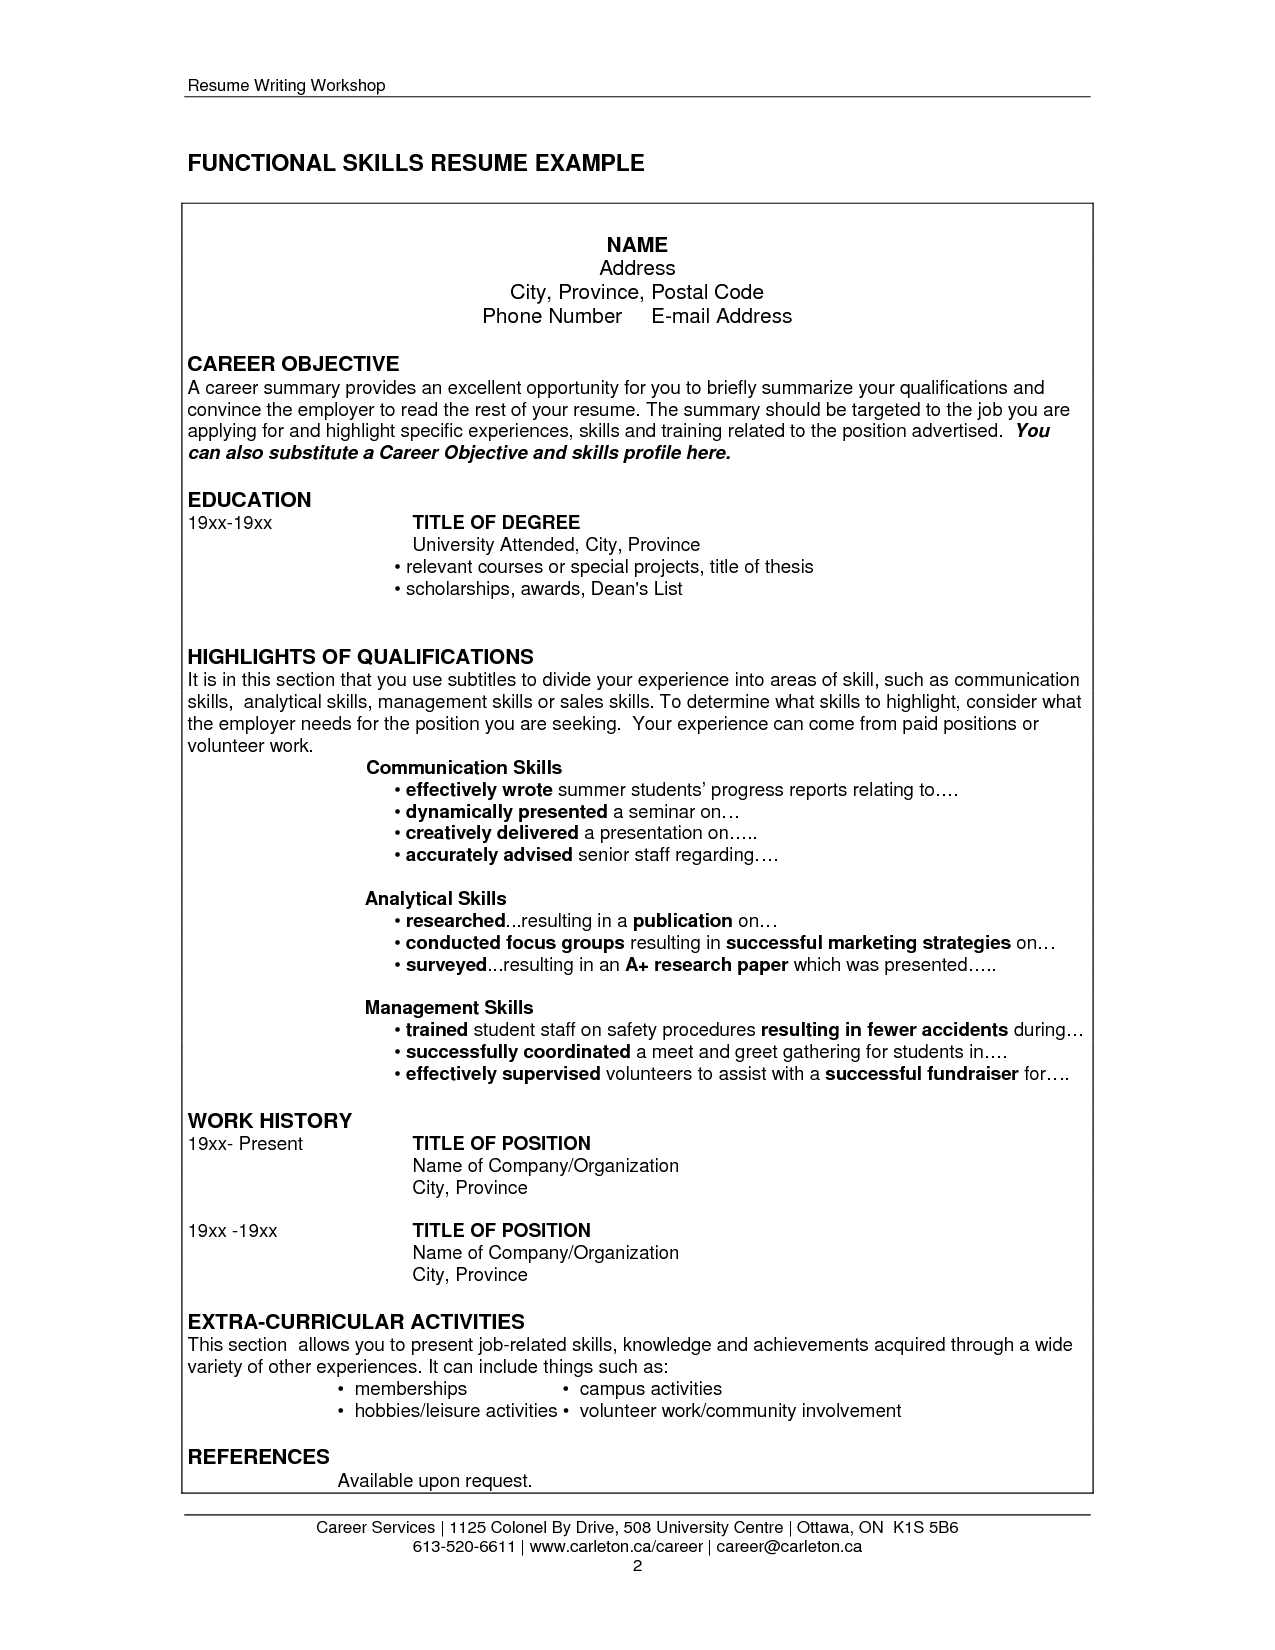 Skills And Abilities Resume Examples Resume Examples Qualifications  Resume Examples And Template